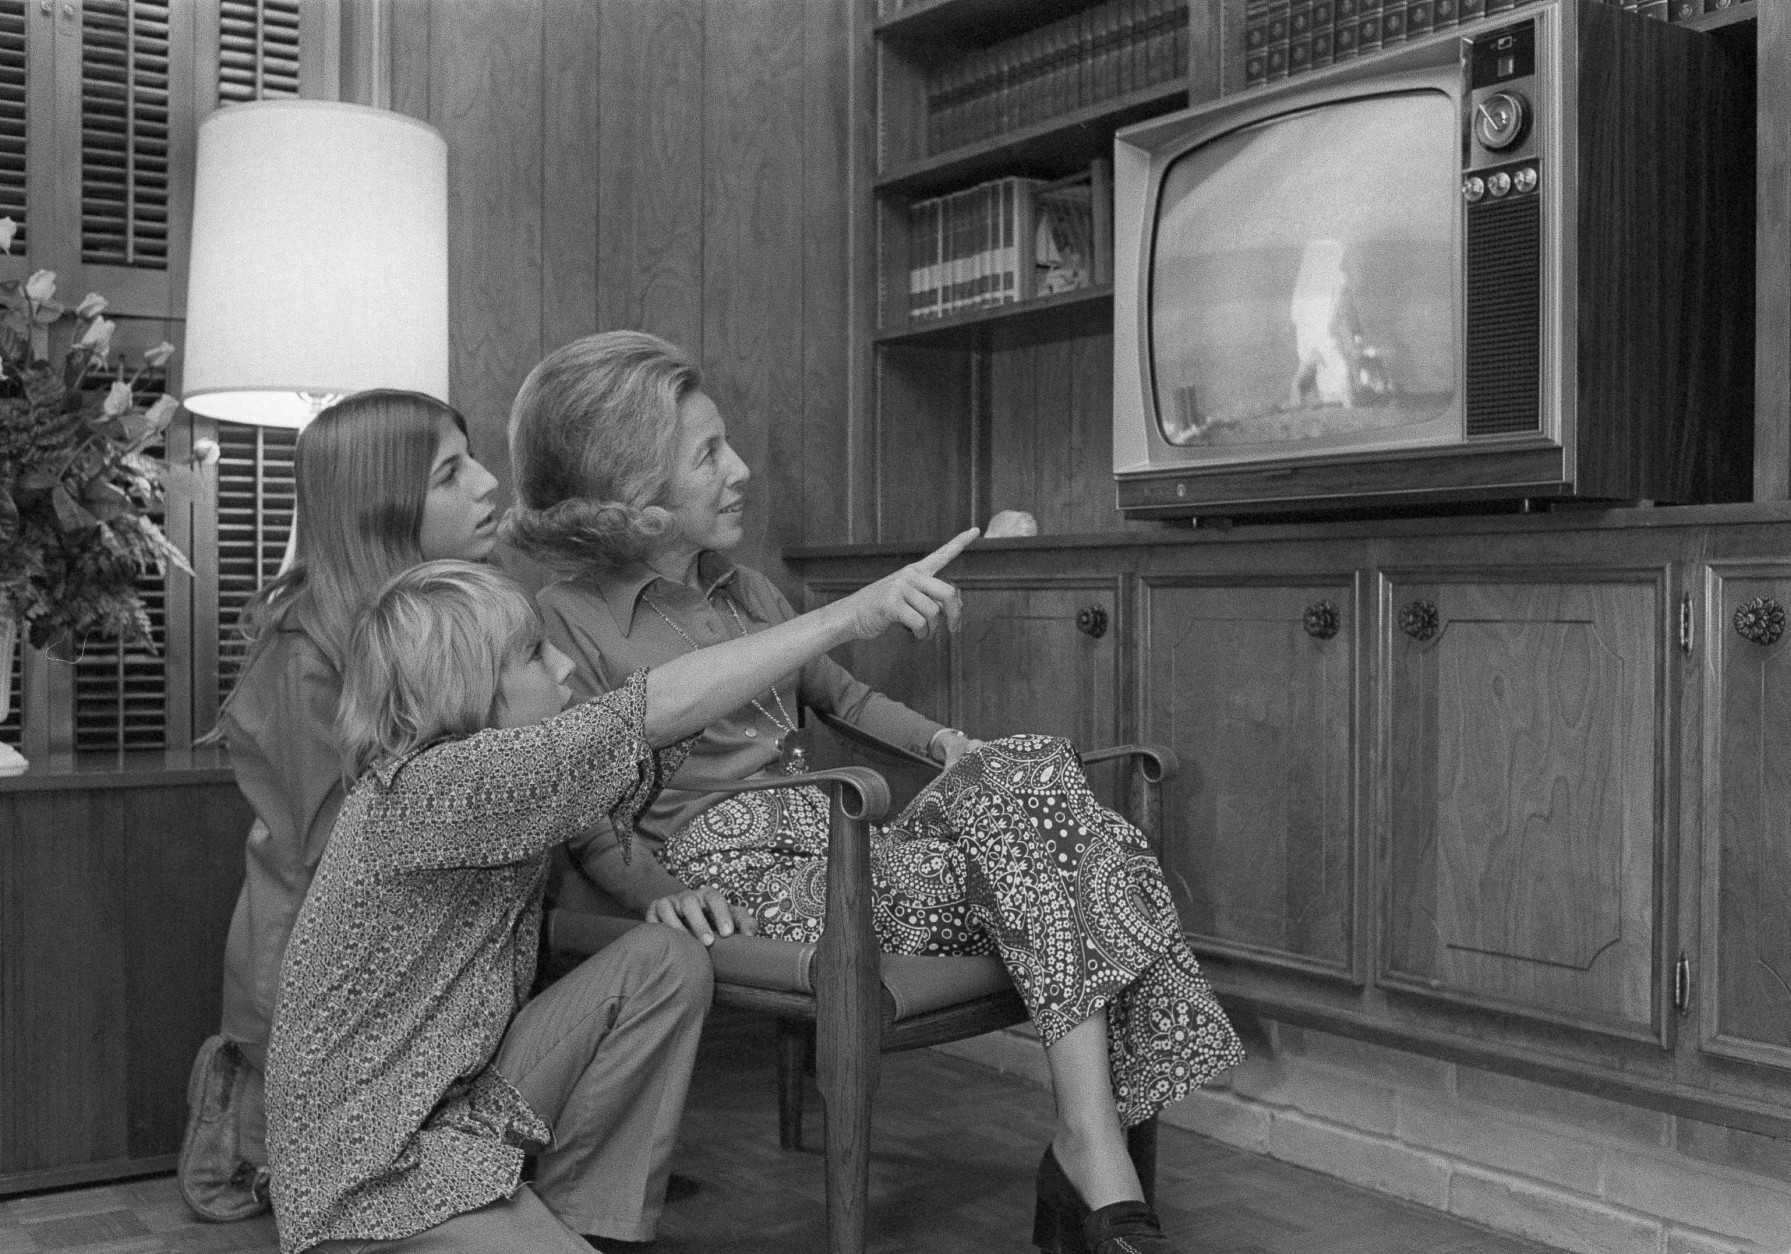 Jon Evans, 11, son of Apollo 17 command module pilot, Ronald E. Evans, points out one of the highlights of the television of the first EVA by moon explorers Eugene A. Cernan and Harrison B. Schmitt, Dec. 11, 1972. Watching with Jon are his mother, Jan Evans , and sistet, Jaime, 13. While the Evans family was watching television in their home near the Manned Spacecraft Center, Houston, Texas, commander Evans was orbiting the moon in the command module. (AP Photo)